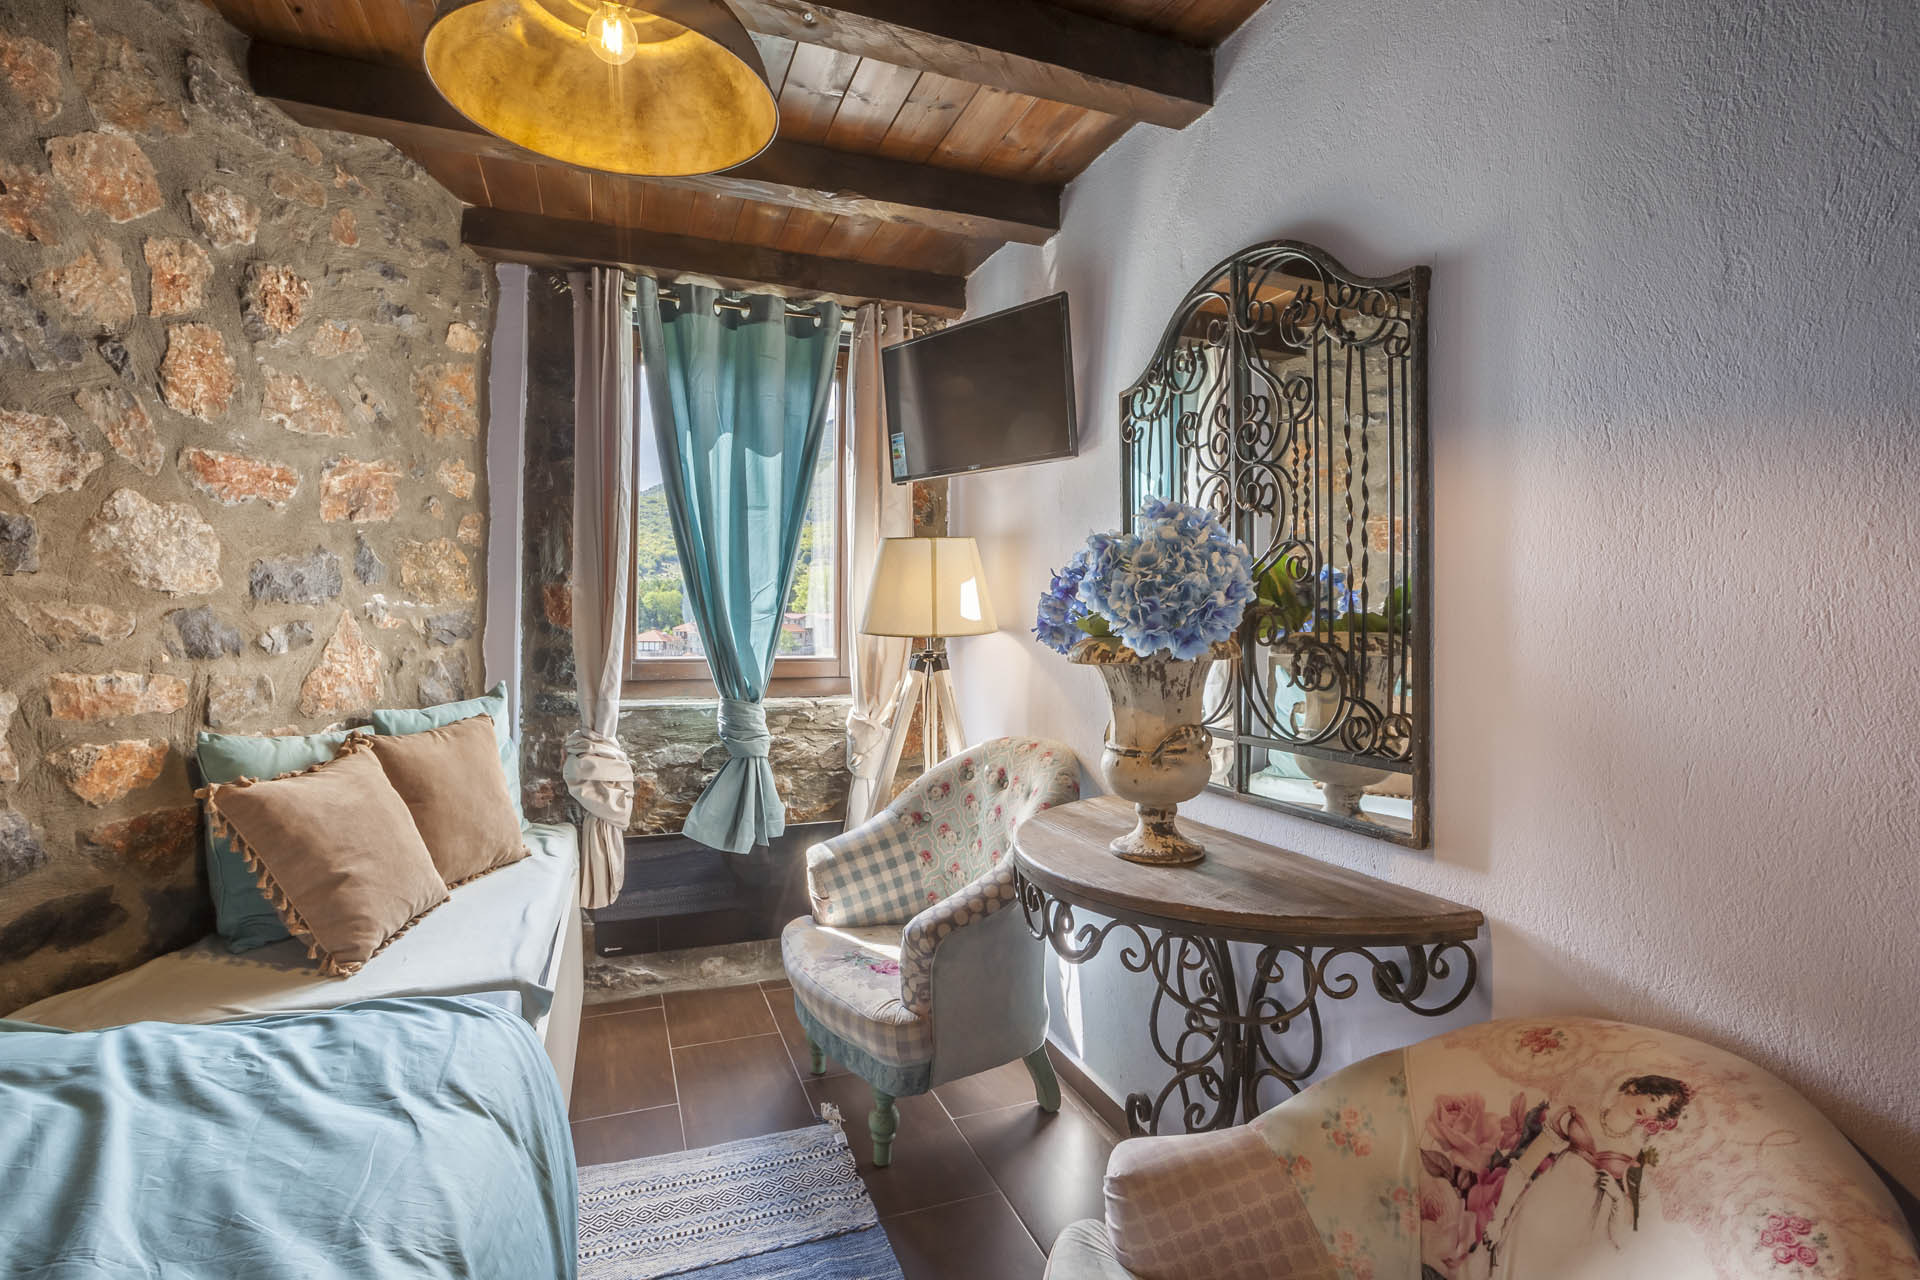 Read more about the article CHALET DANDY ON THE HILL 1